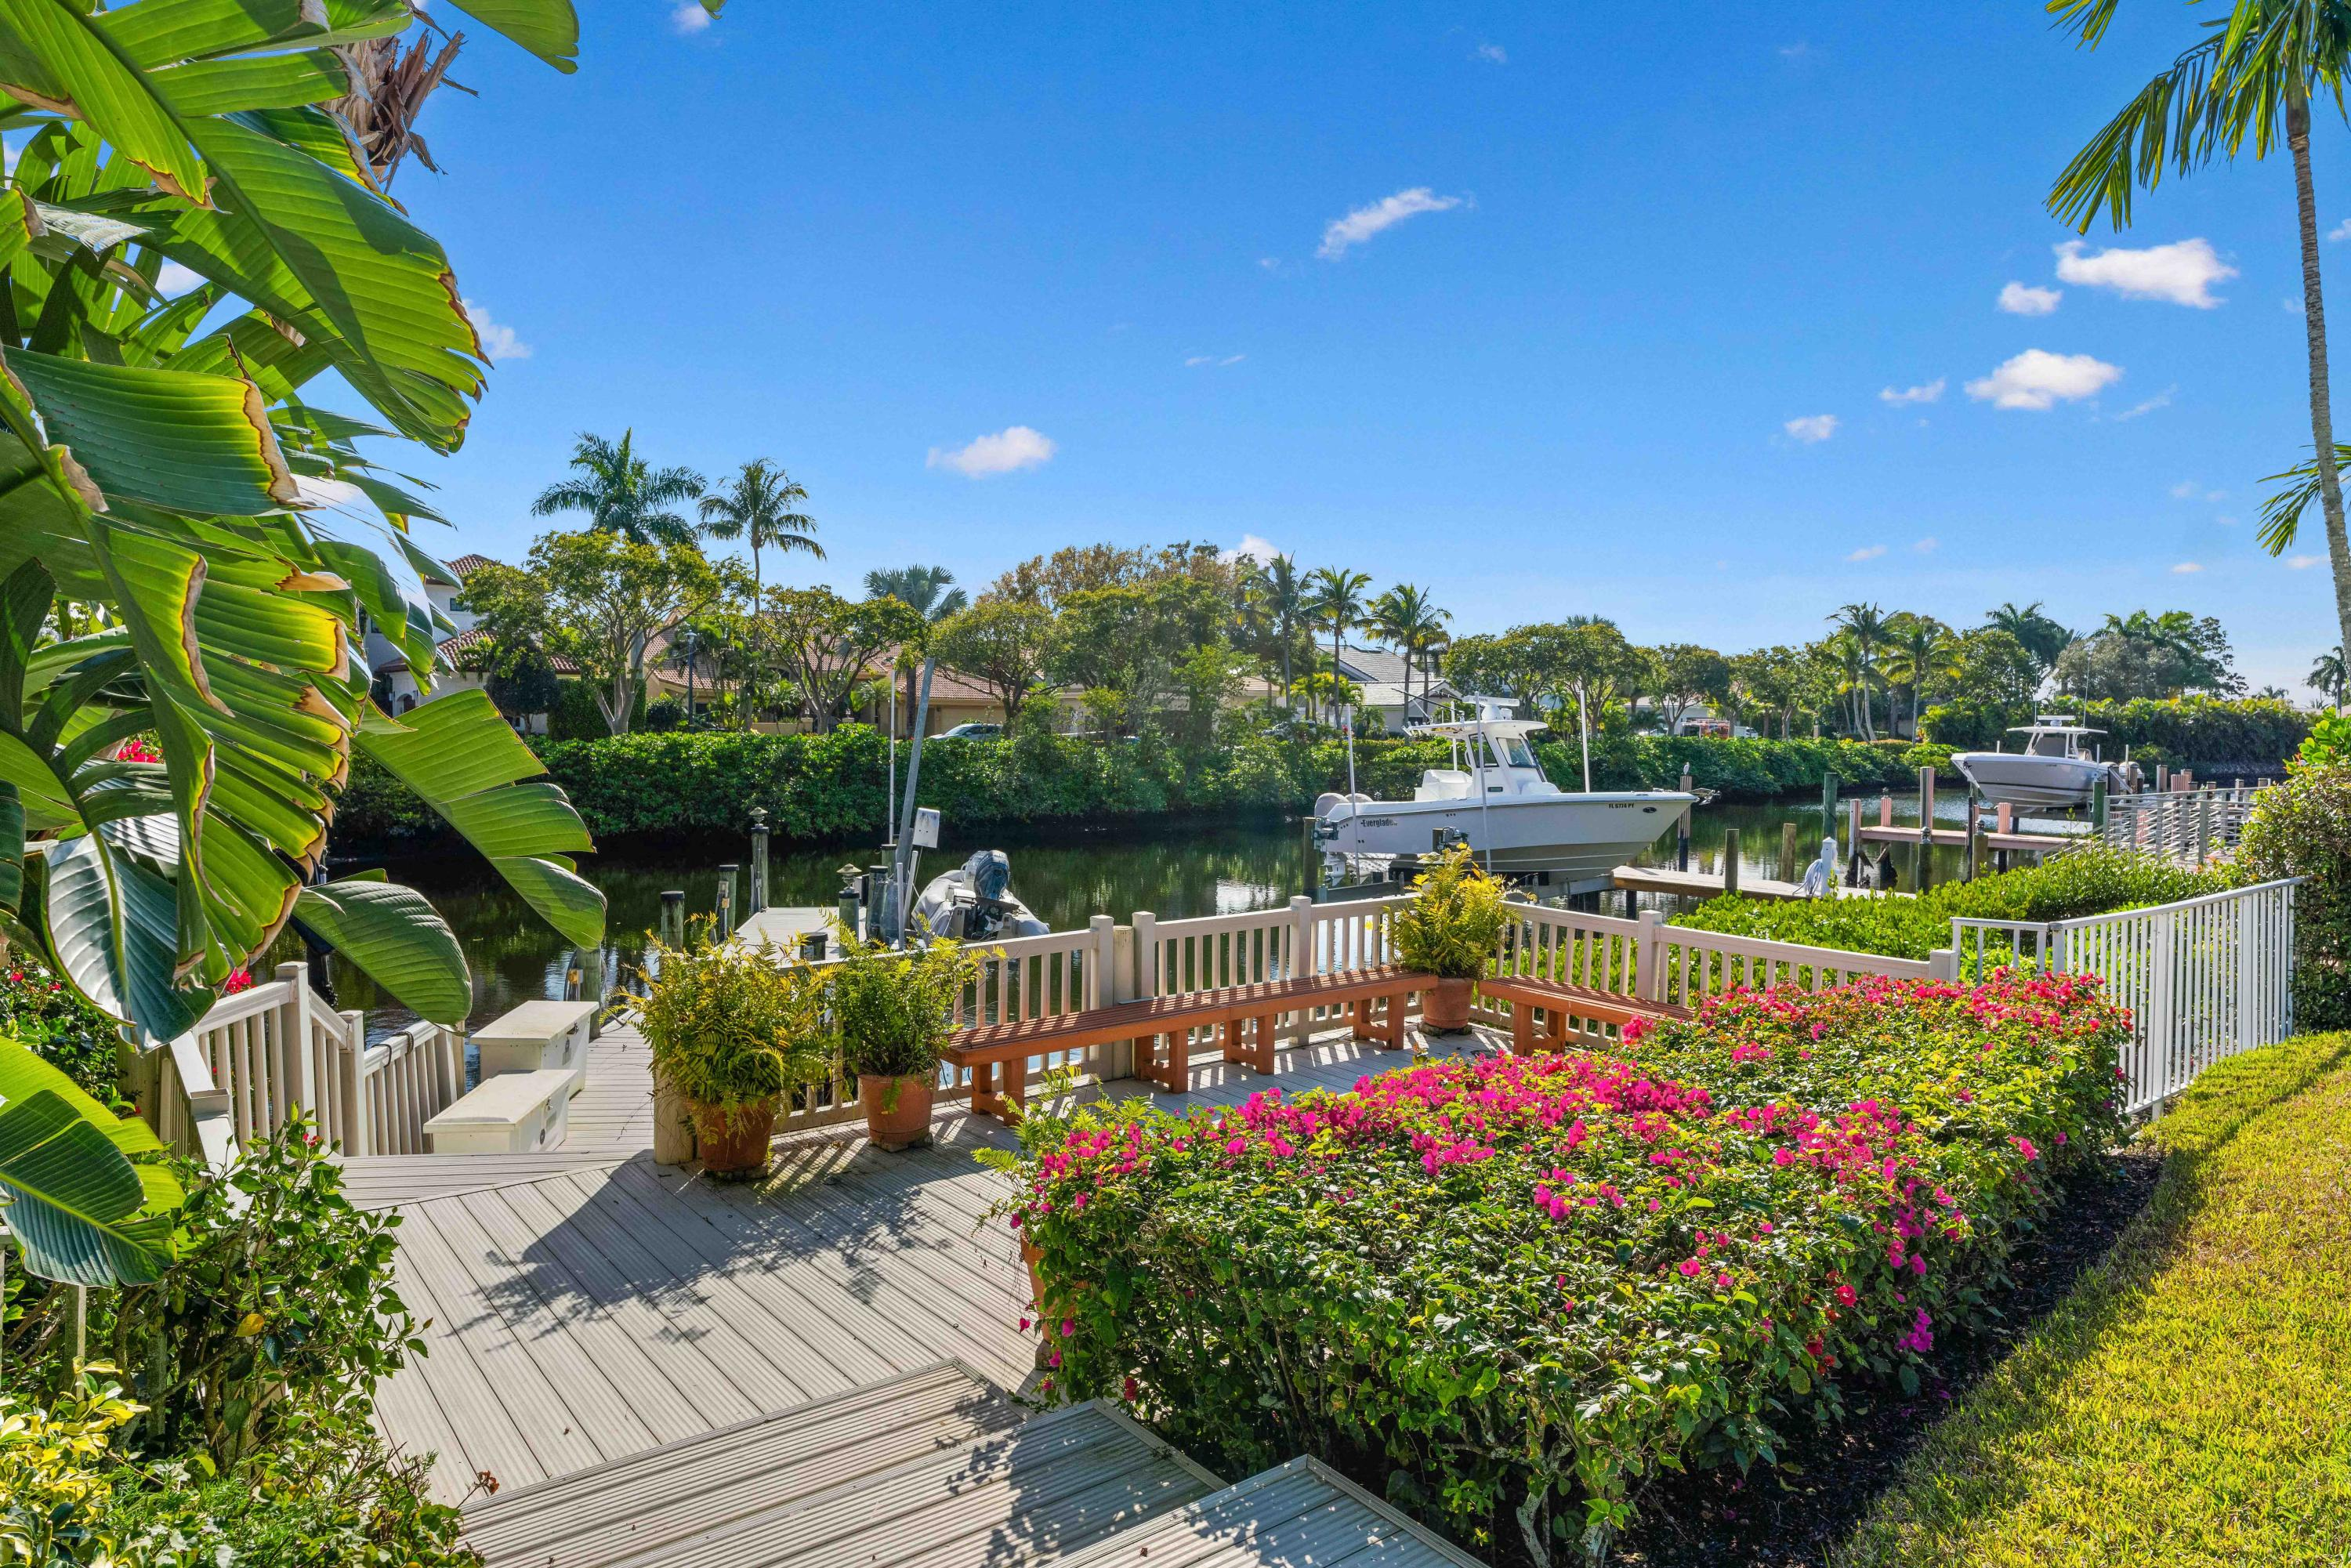 ADMIRALS COVE REALTY